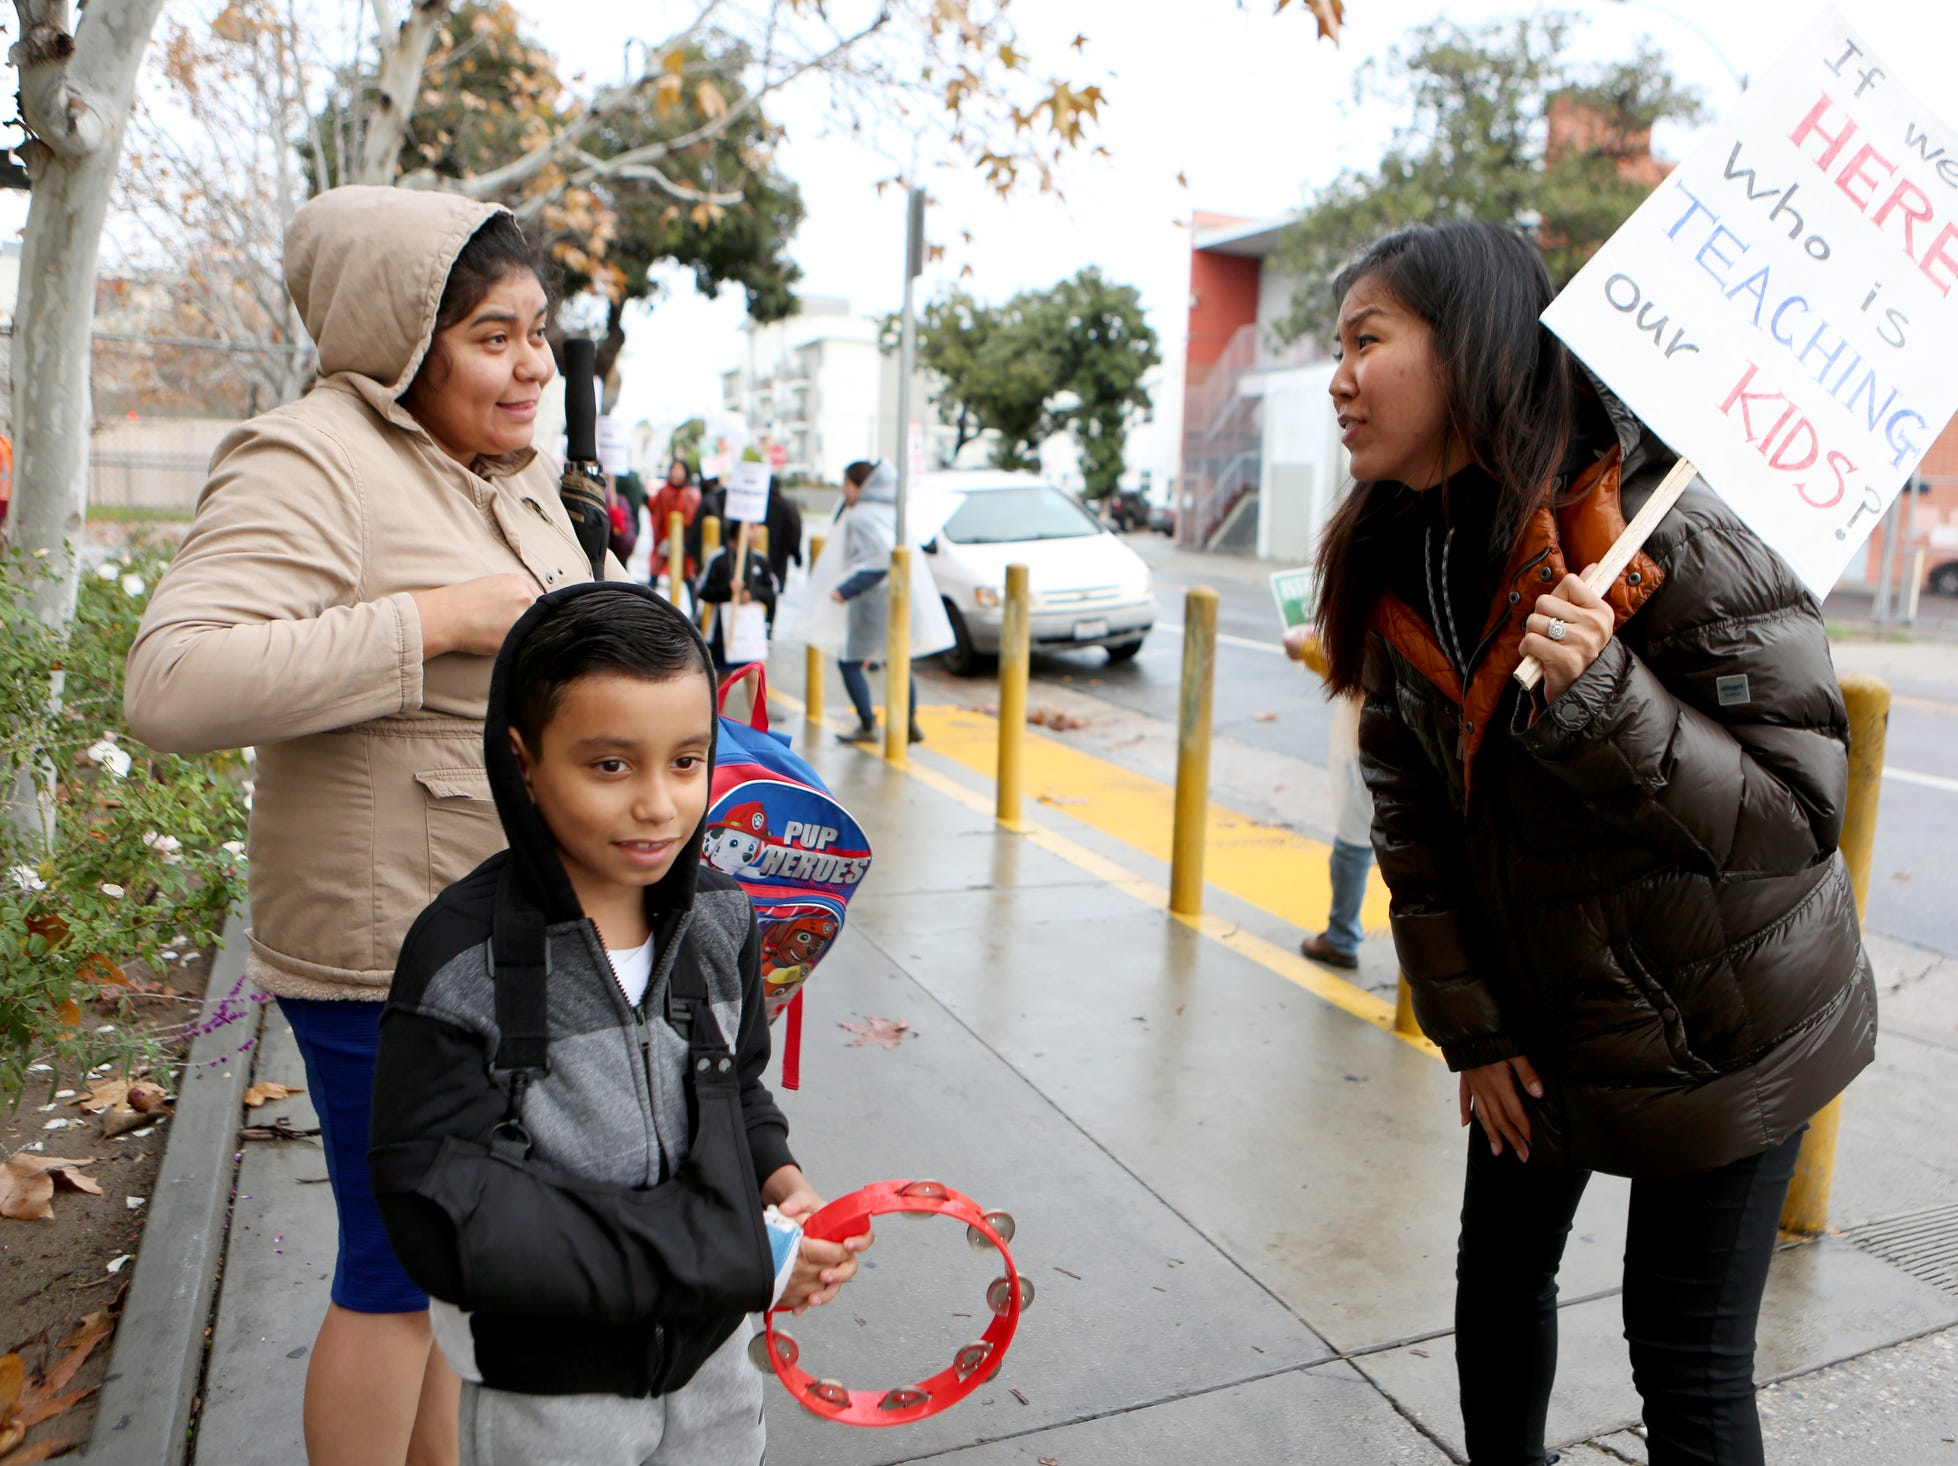 Second-grade teacher Sonia Yang, right, thanks Wendy Arias for not letting her son, Jose Ramos, cross the picket line at Charles H. Kim Elementary School during the third day of the United Teachers Los Angeles strike in Los Angeles on Wednesday, January 16, 2019.